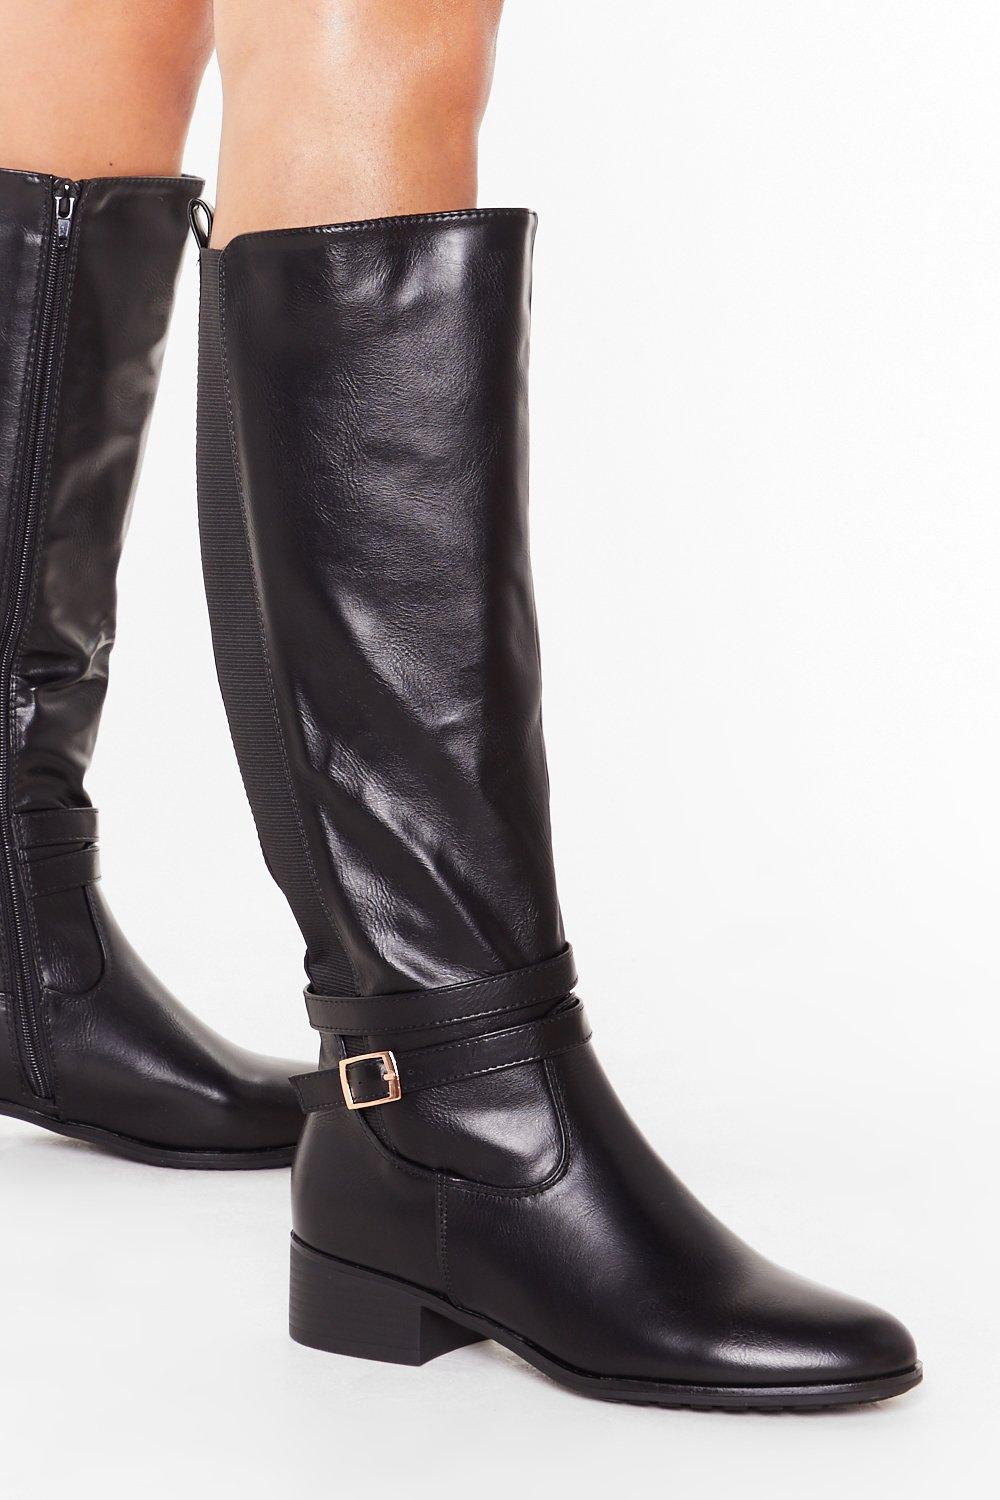 Image of We'll Faux Leather Know Knee High Buckle Boots